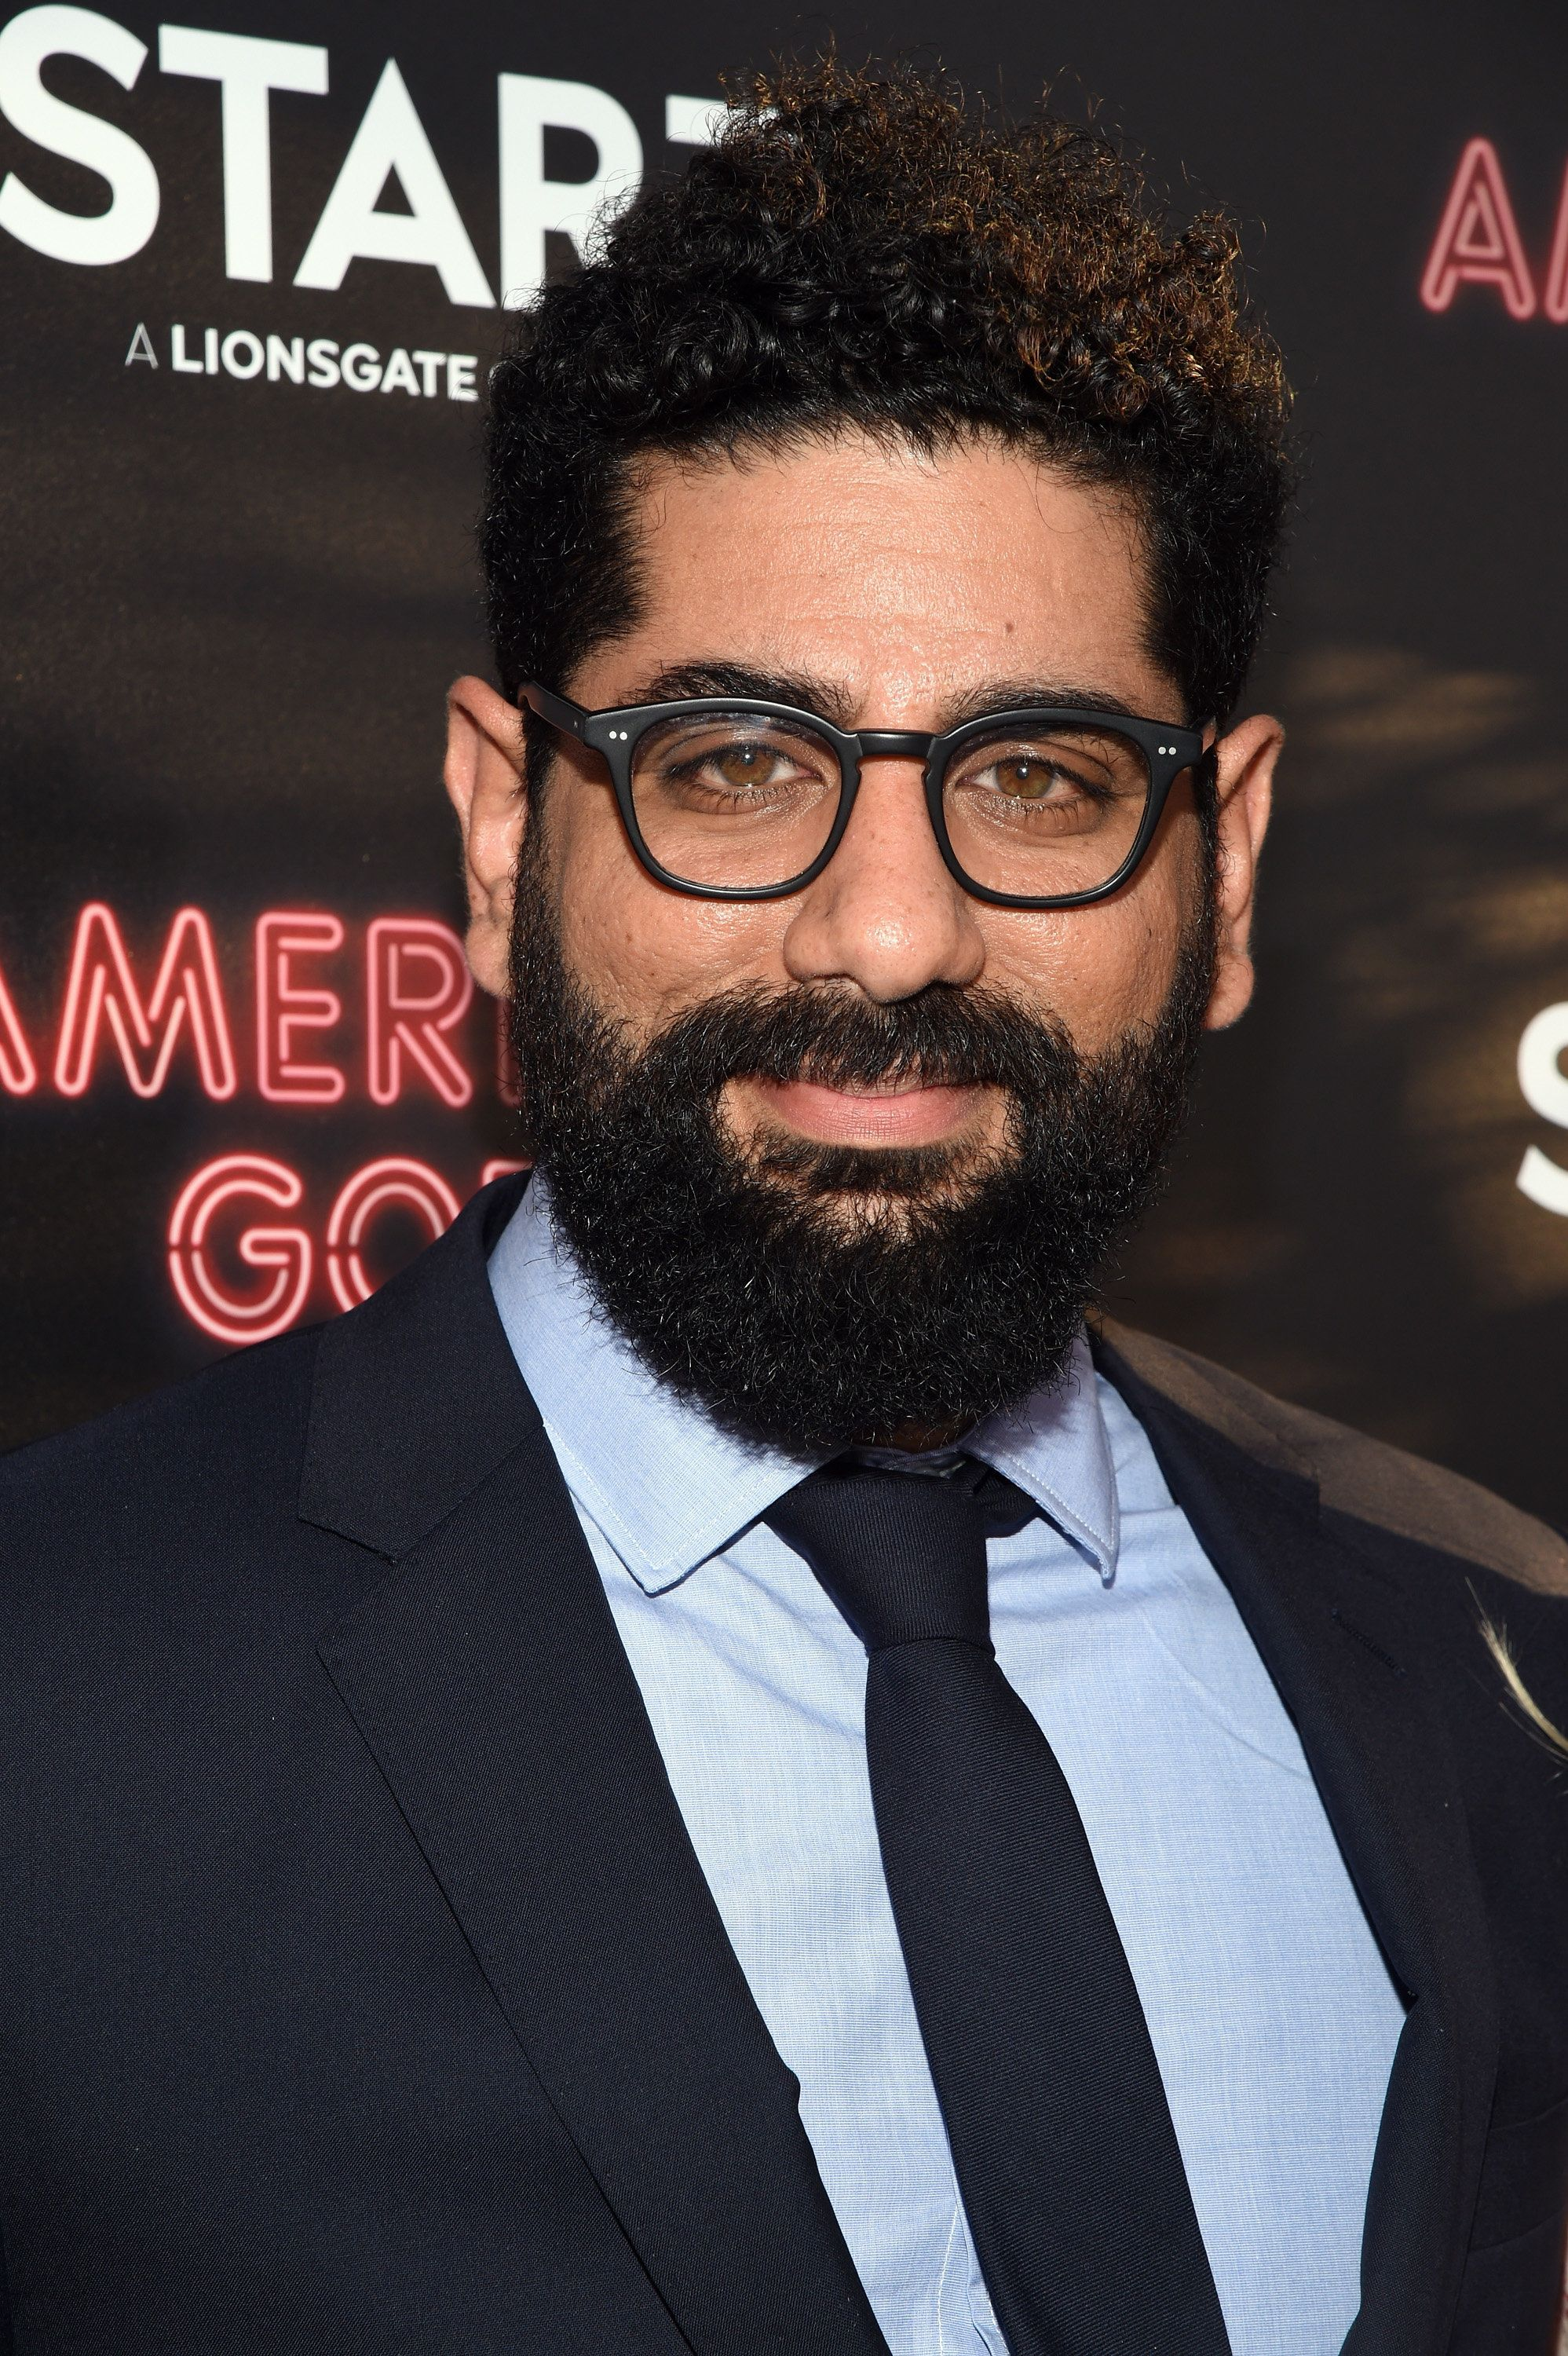 LOS ANGELES, CA - APRIL 20:  Actor Mousa Kraish attends the 'American Gods' premiere at ArcLight Hollywood on April 20, 2017 in Los Angeles, California.  (Photo by Michael Kovac/Getty Images for Starz)